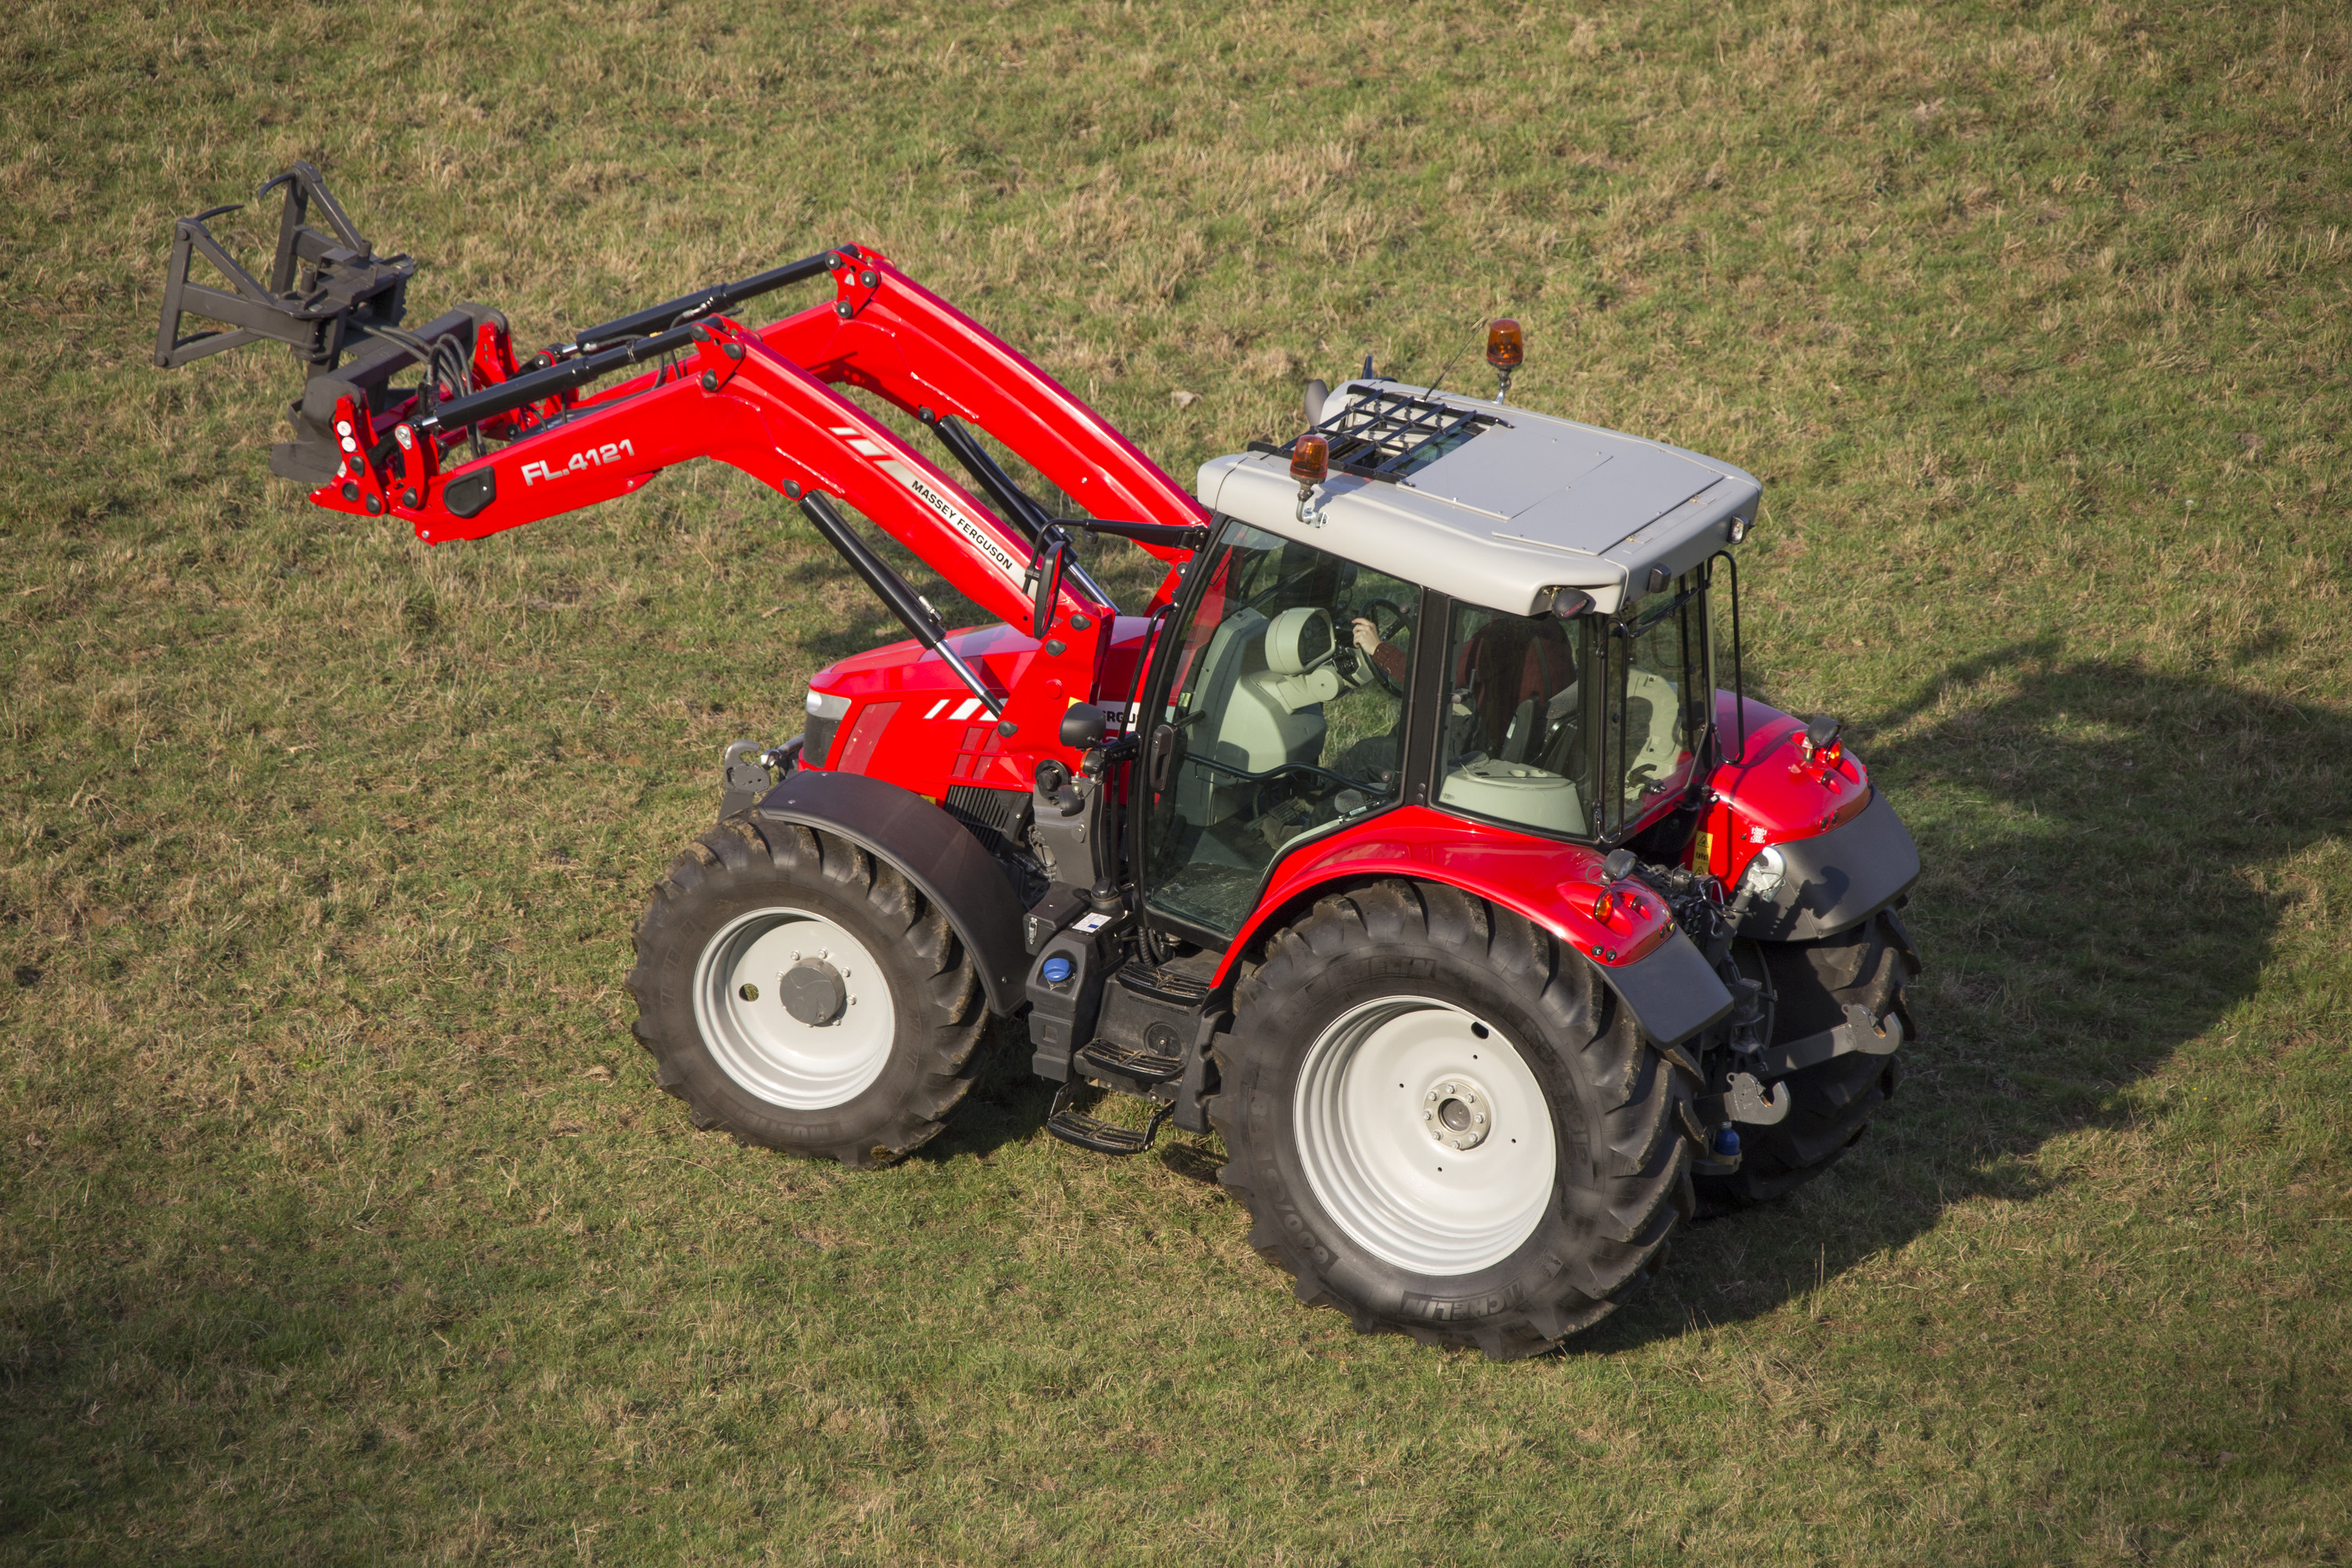 Massey Ferguson Global Series Visioline roof option further improves visibility for loader operations. MF 5713 with MF FL.4121 - developed for the demanding 60 - 130hp multi-purpose sector.